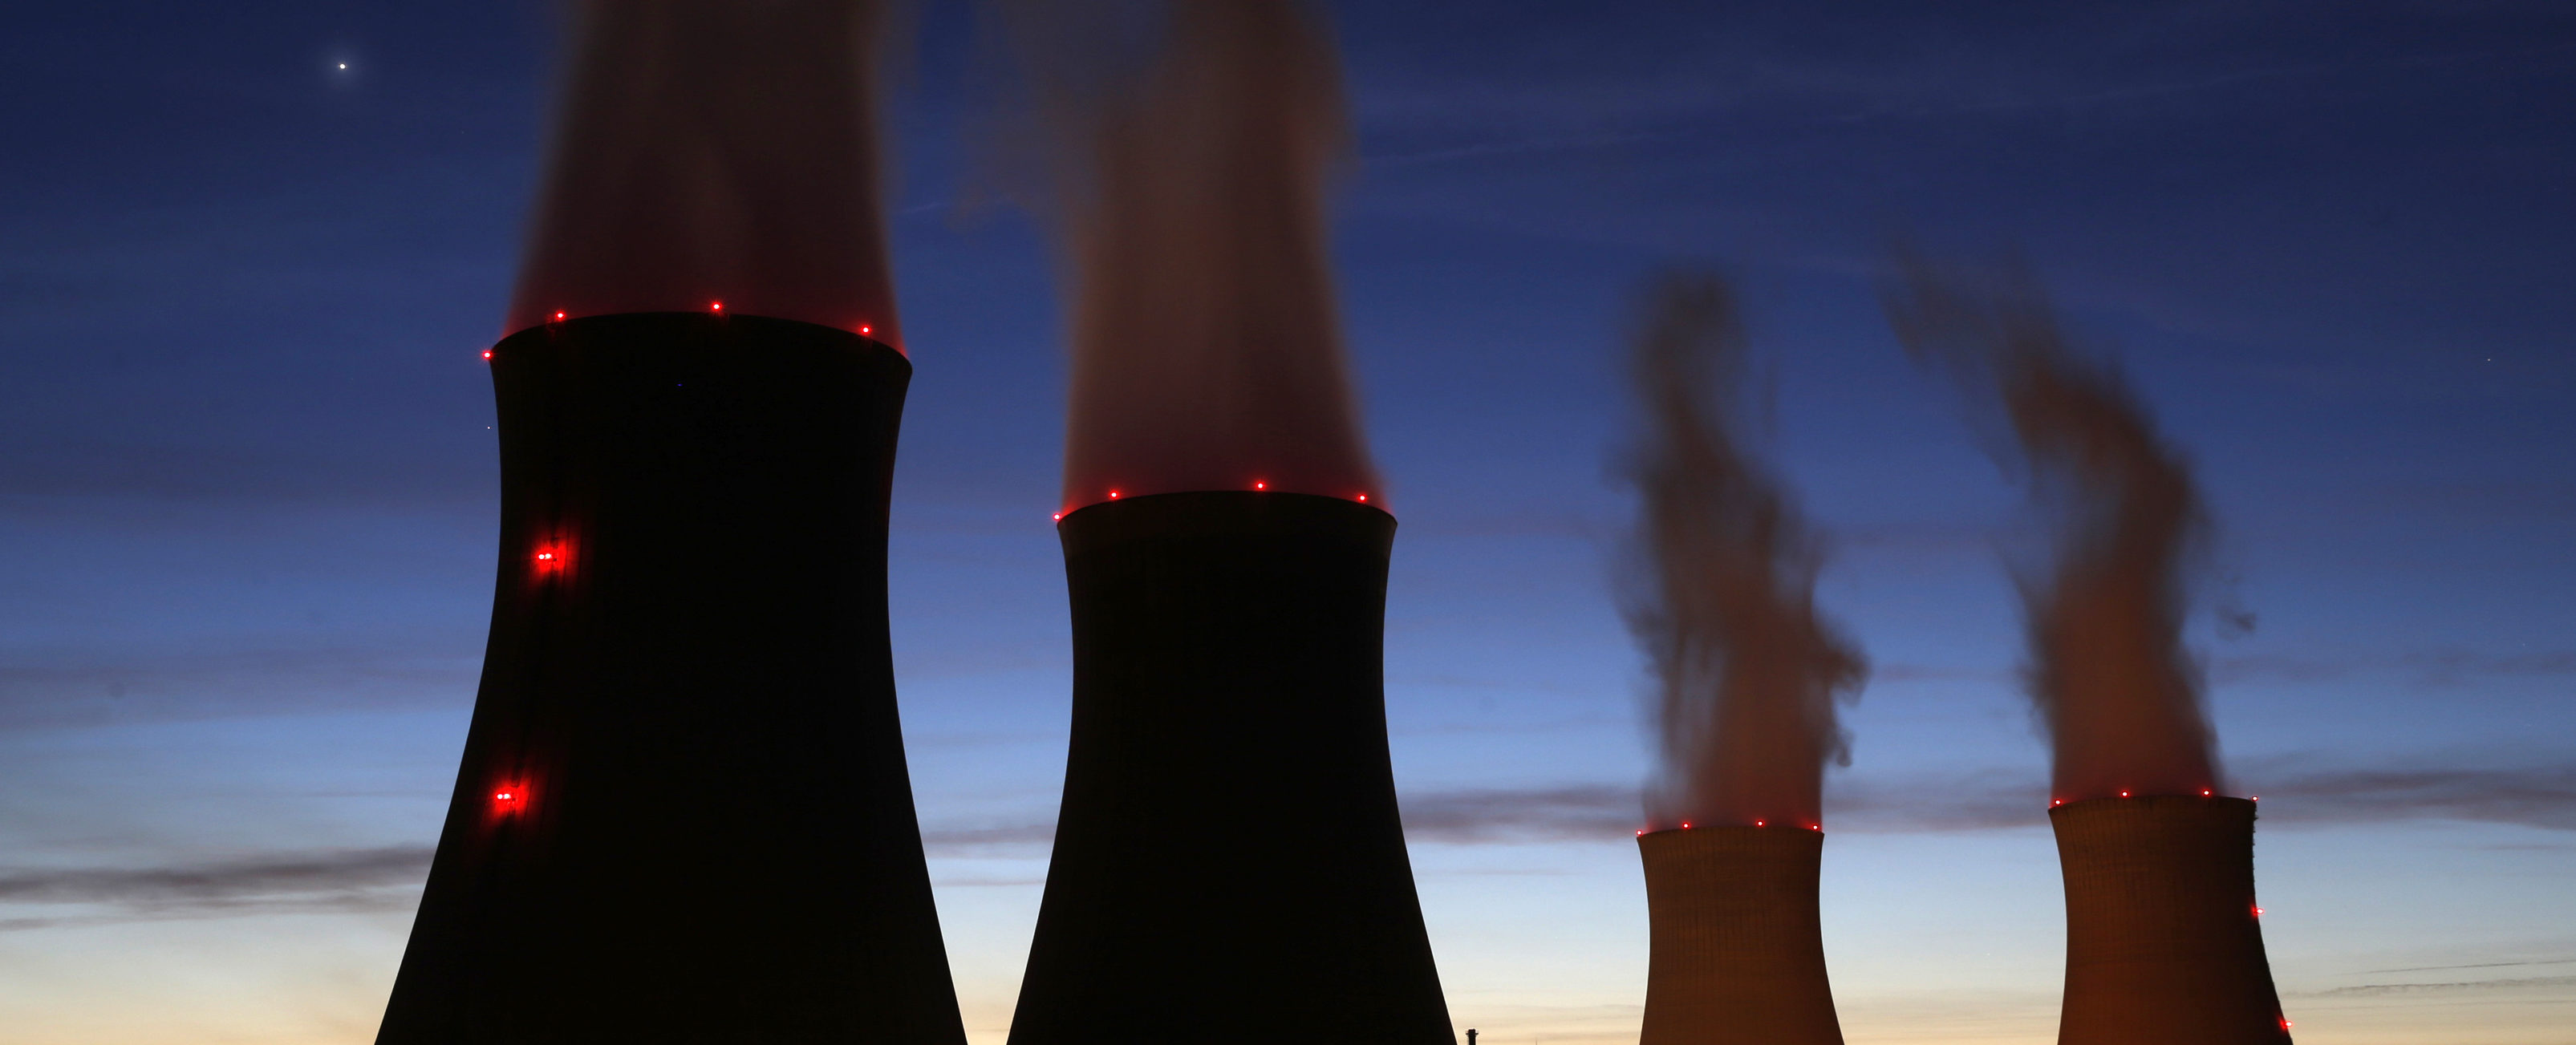 Steam rises at night from the cooling towers of the Electricite de France (EDF) nuclear power station in Dampierre-en-Burly, March 8, 2015. Picture taken March 8, 2015. REUTERS/Christian Hartmann   Nuclear Company Wants Help From Trump